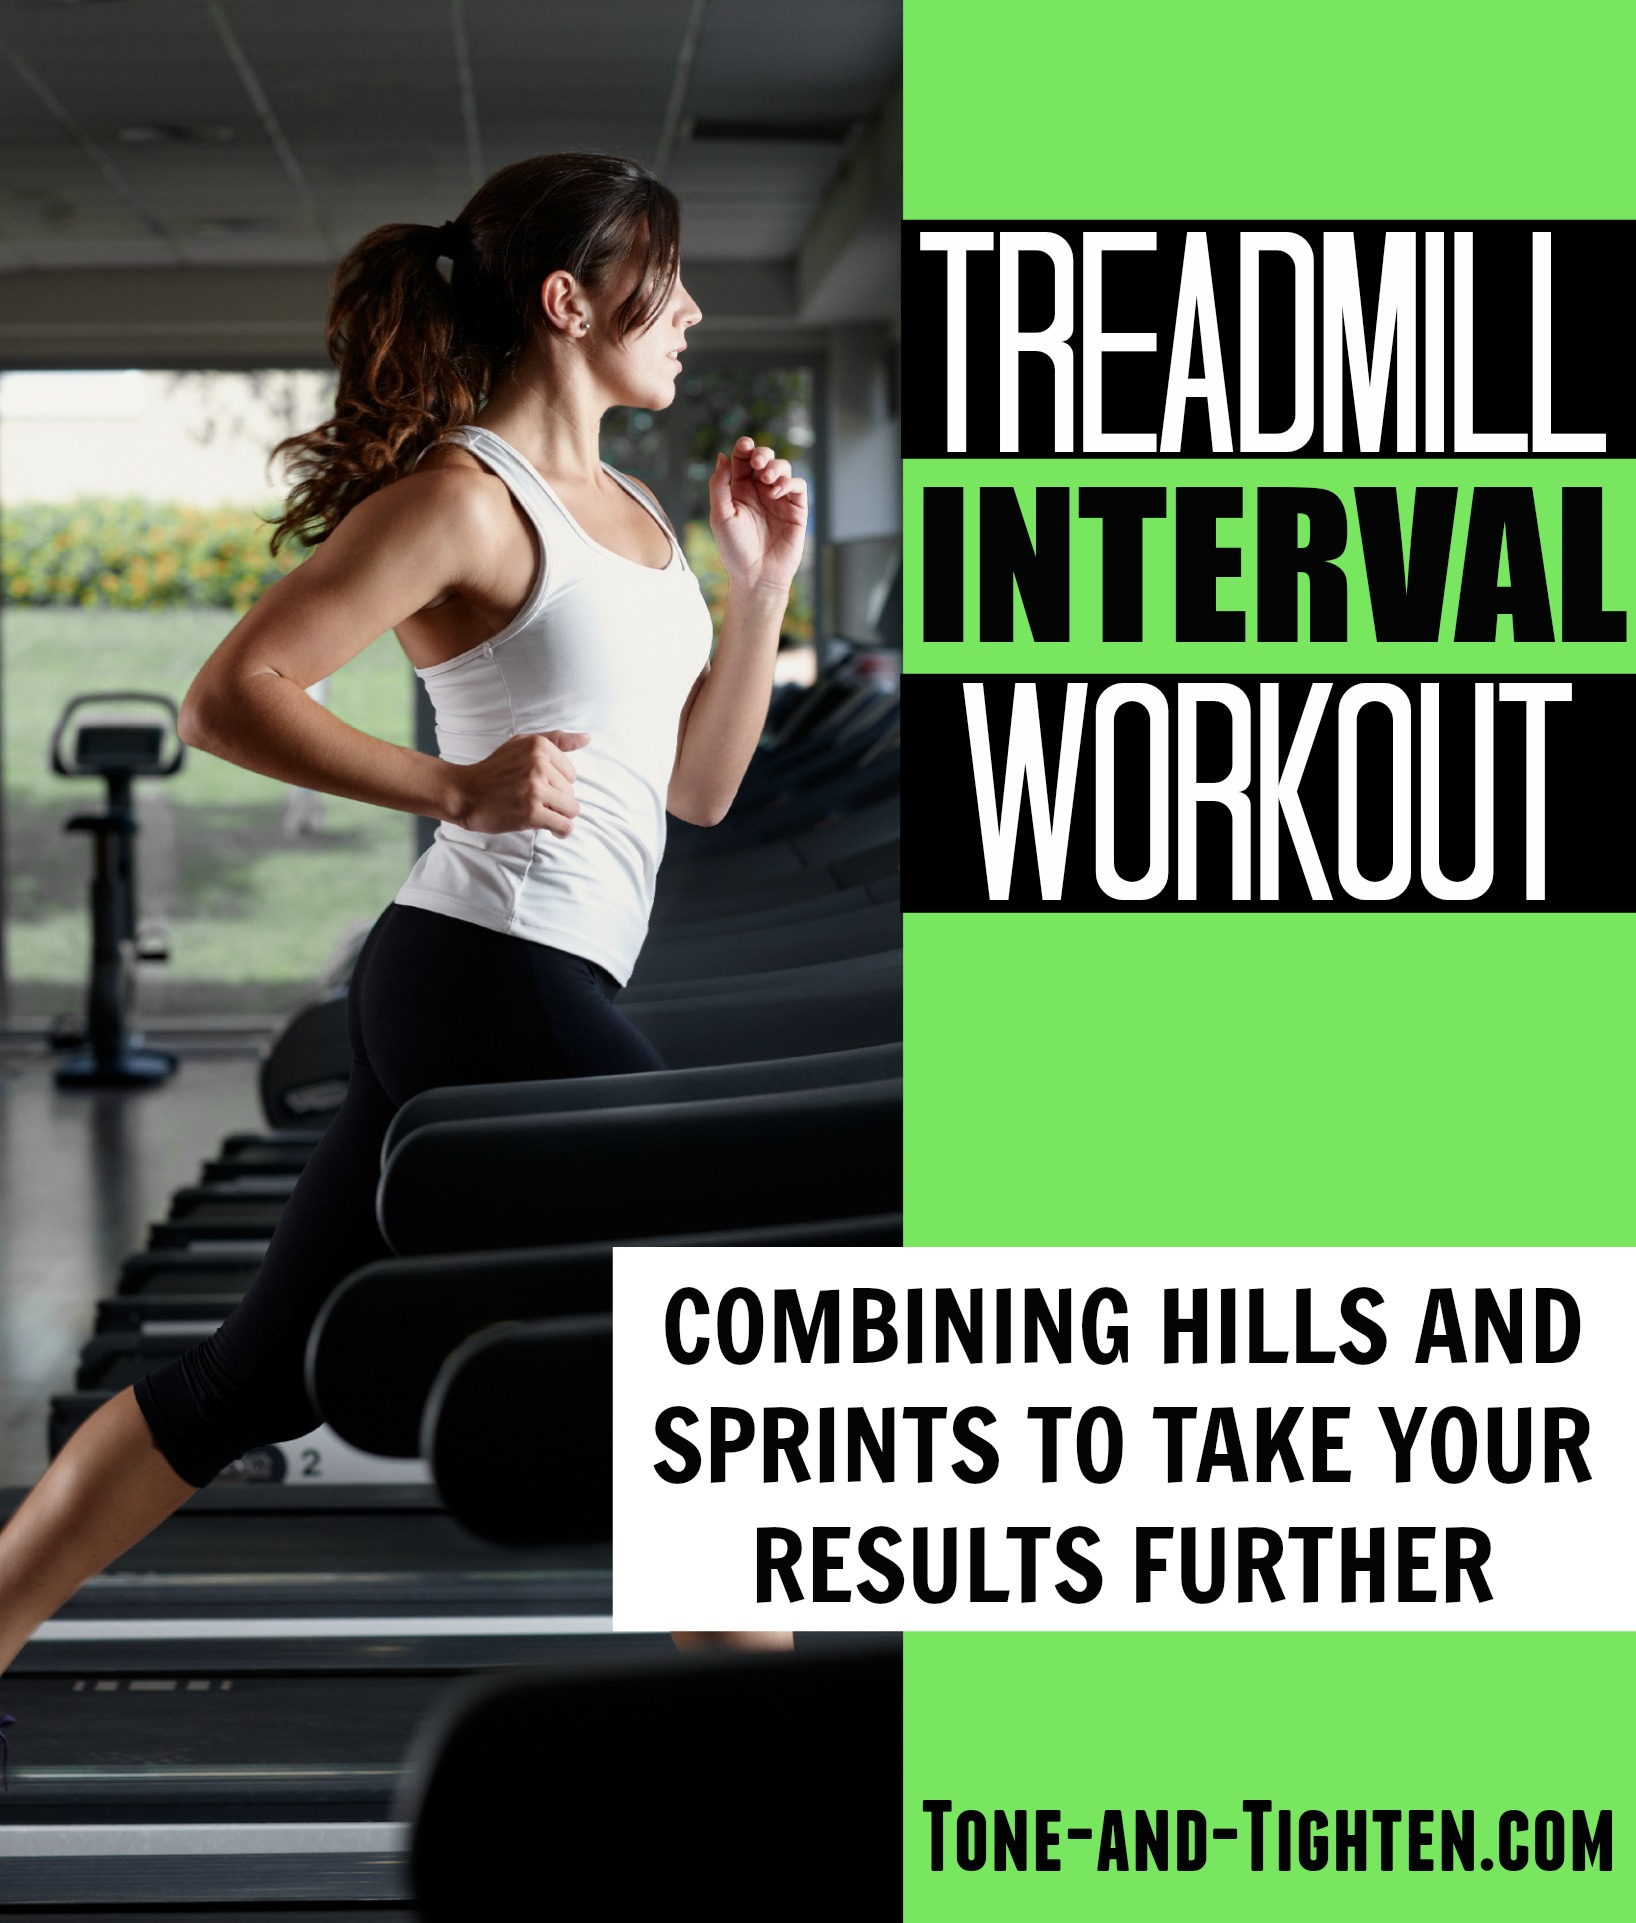 Treadmill Interval Workouts: Treadmill Interval Workout With Hills